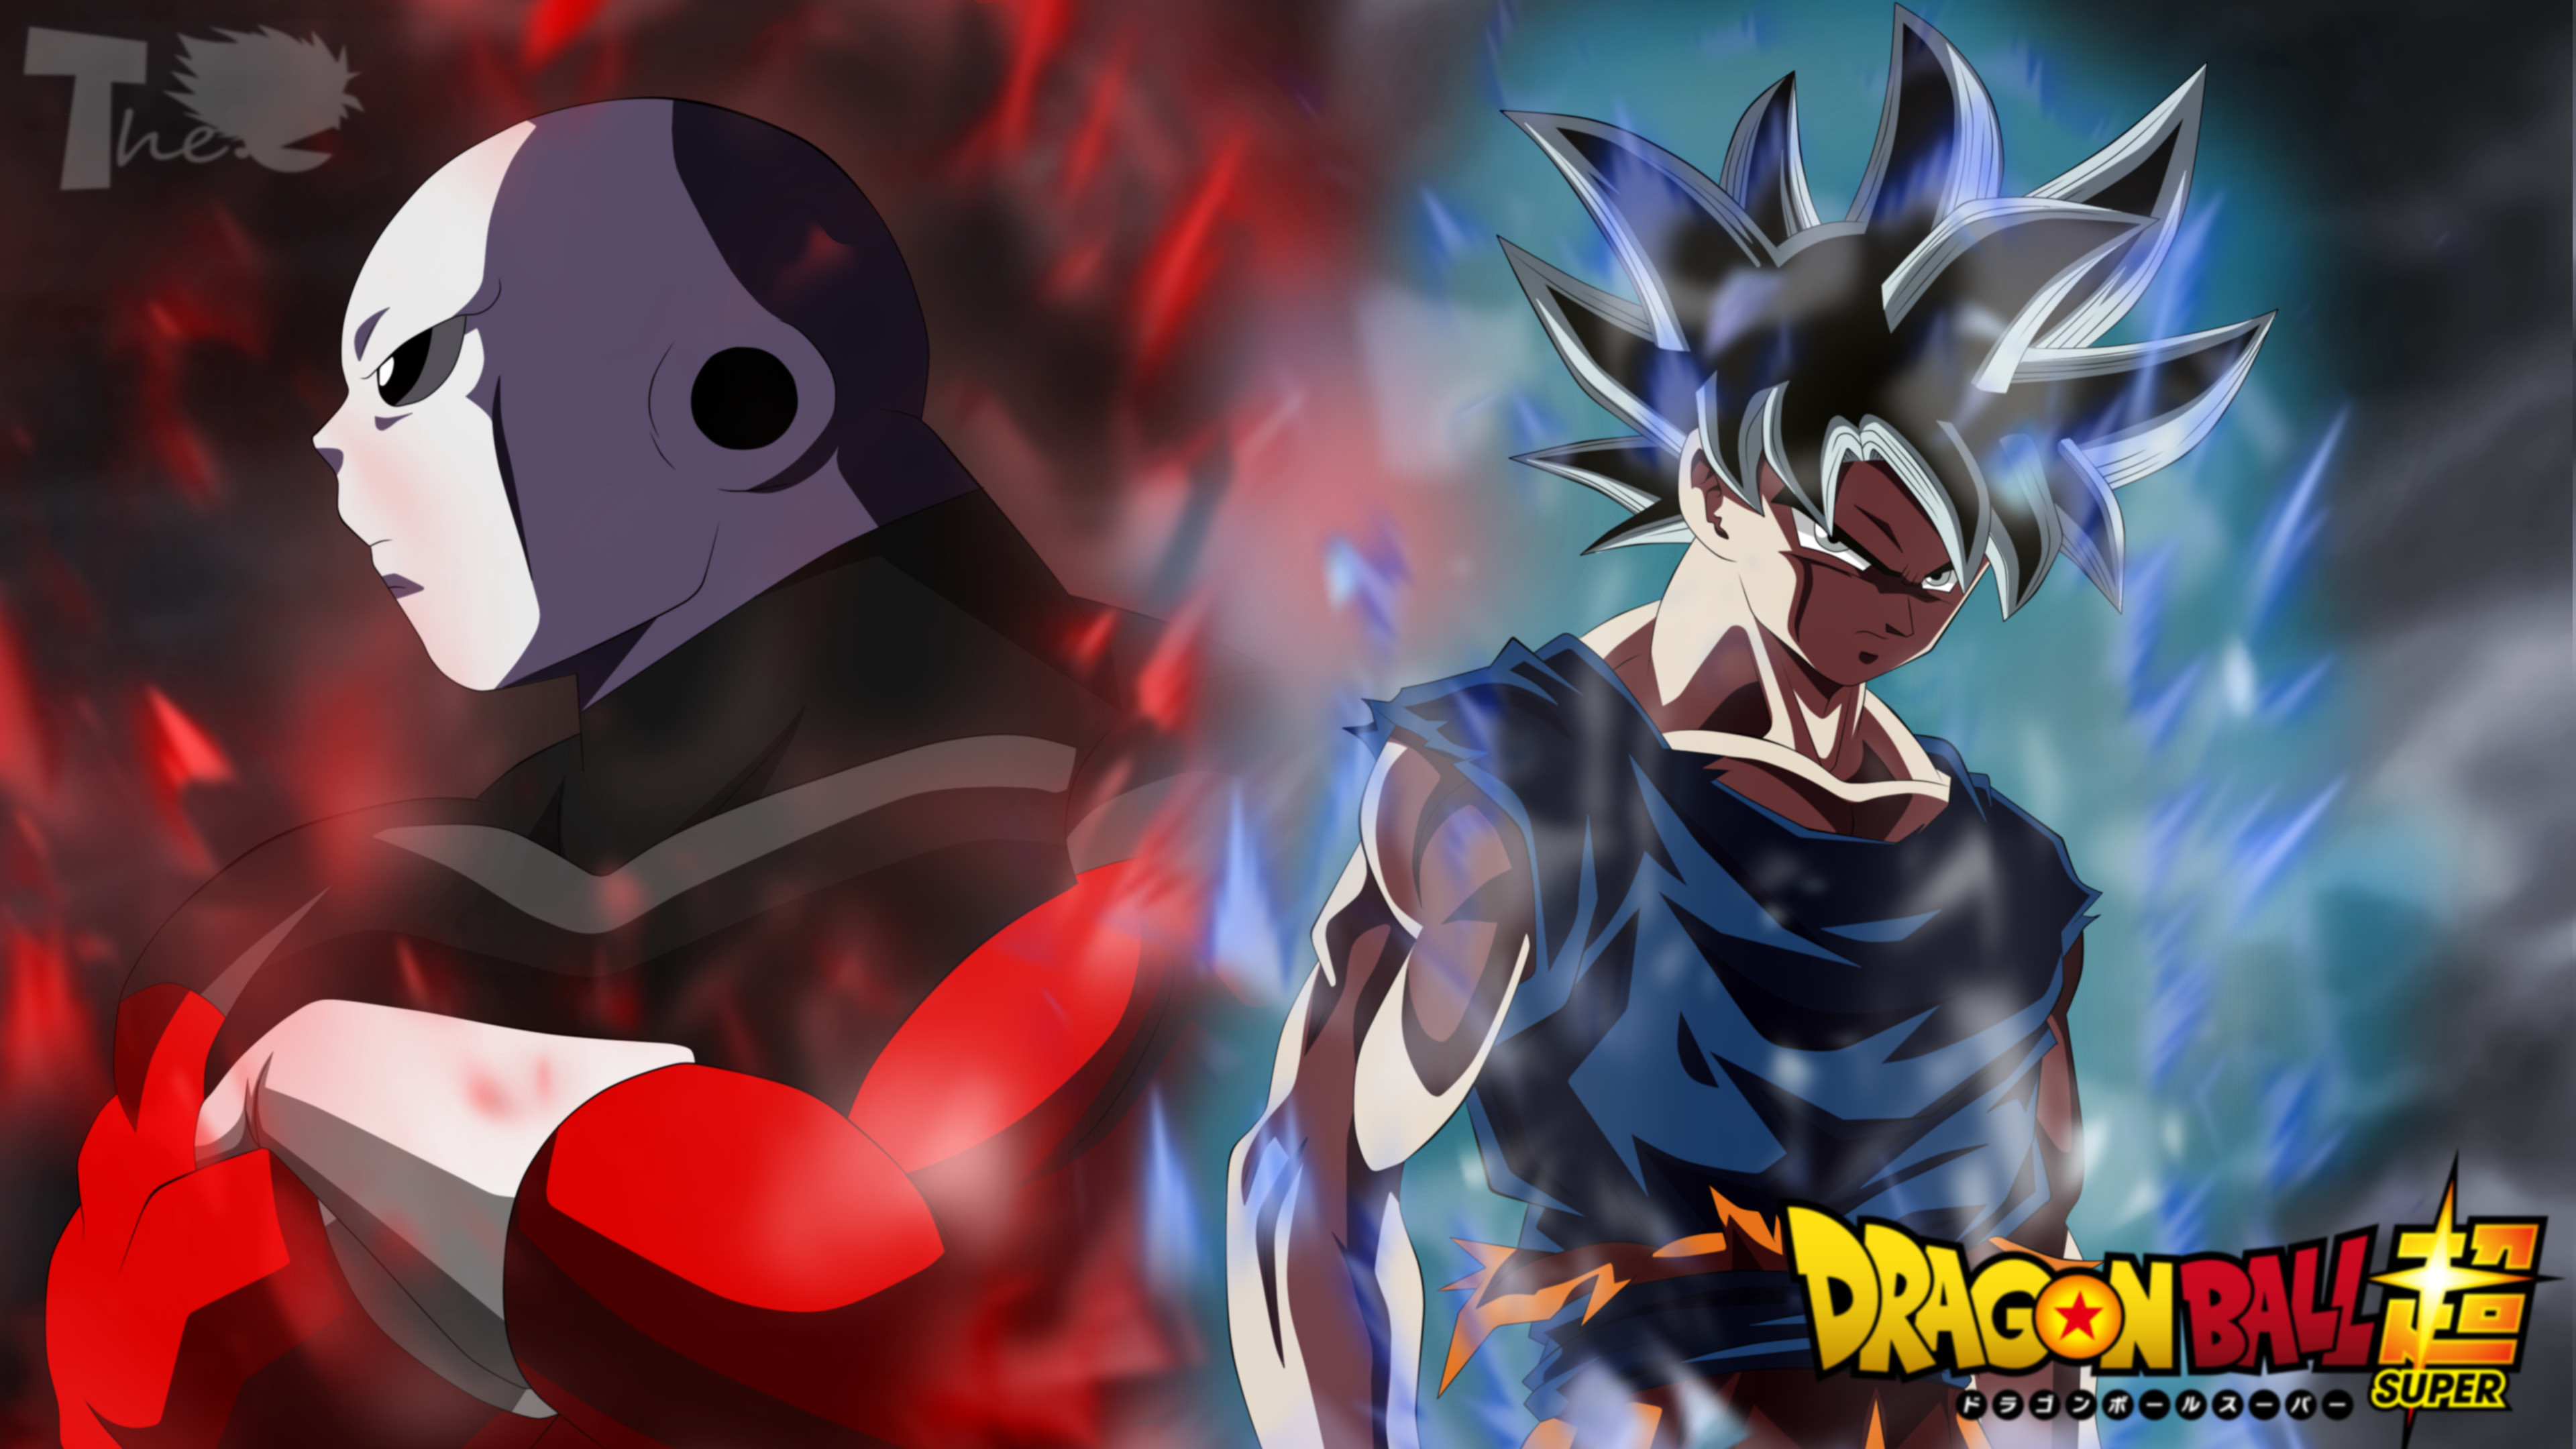 Dragonball Jiren Wallpaper Doraemon